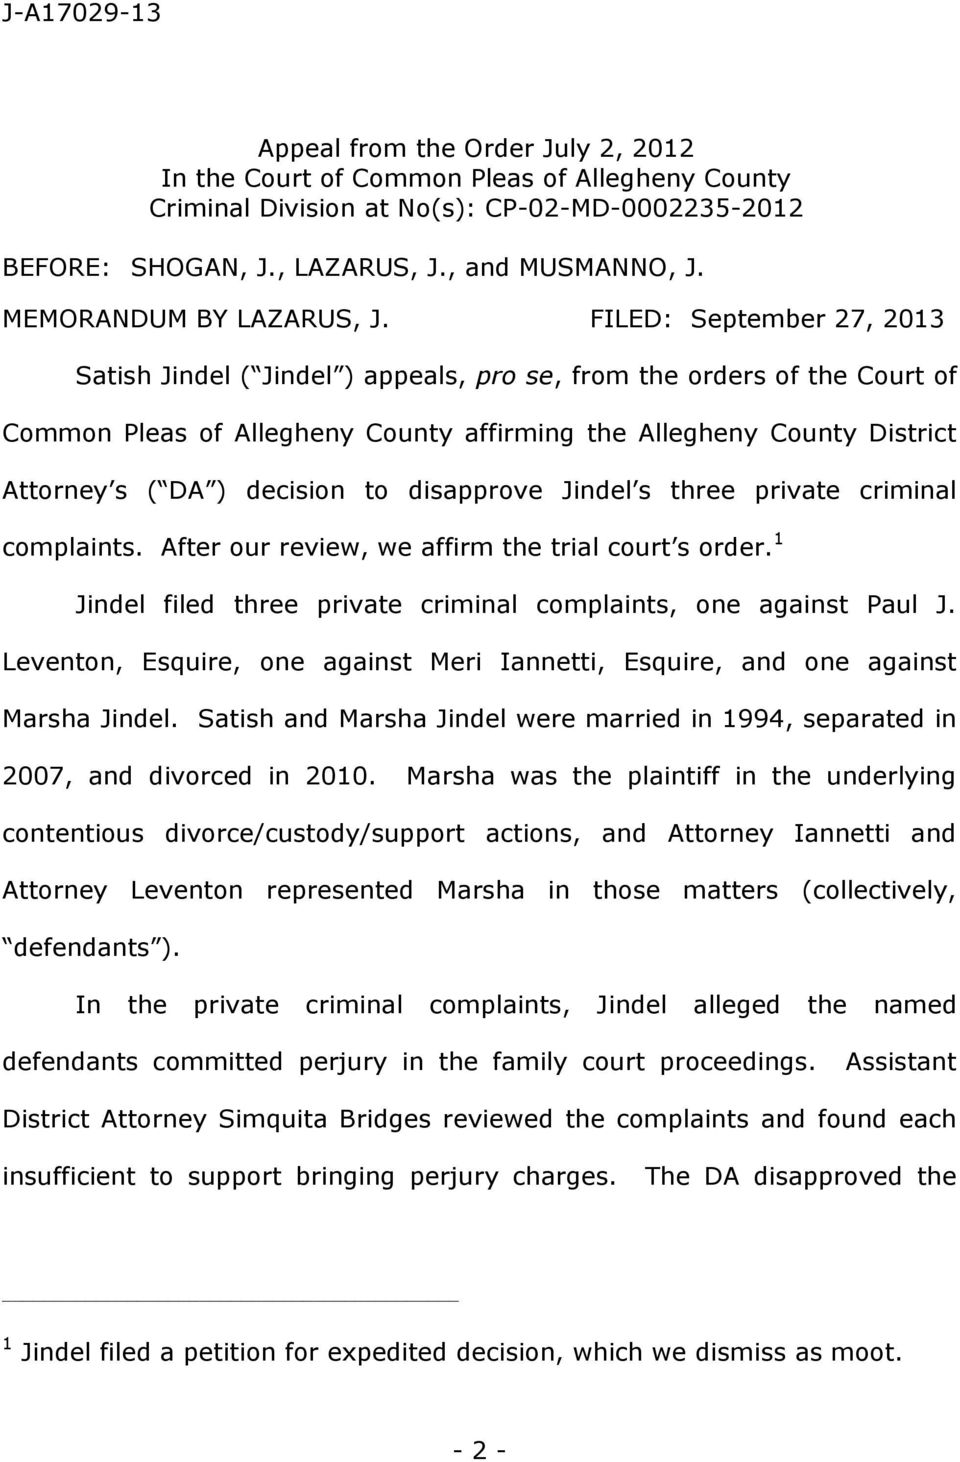 FILED: September 27, 2013 Satish Jindel ( Jindel ) appeals, pro se, from the orders of the Court of Common Pleas of Allegheny County affirming the Allegheny County District Attorney s ( DA ) decision